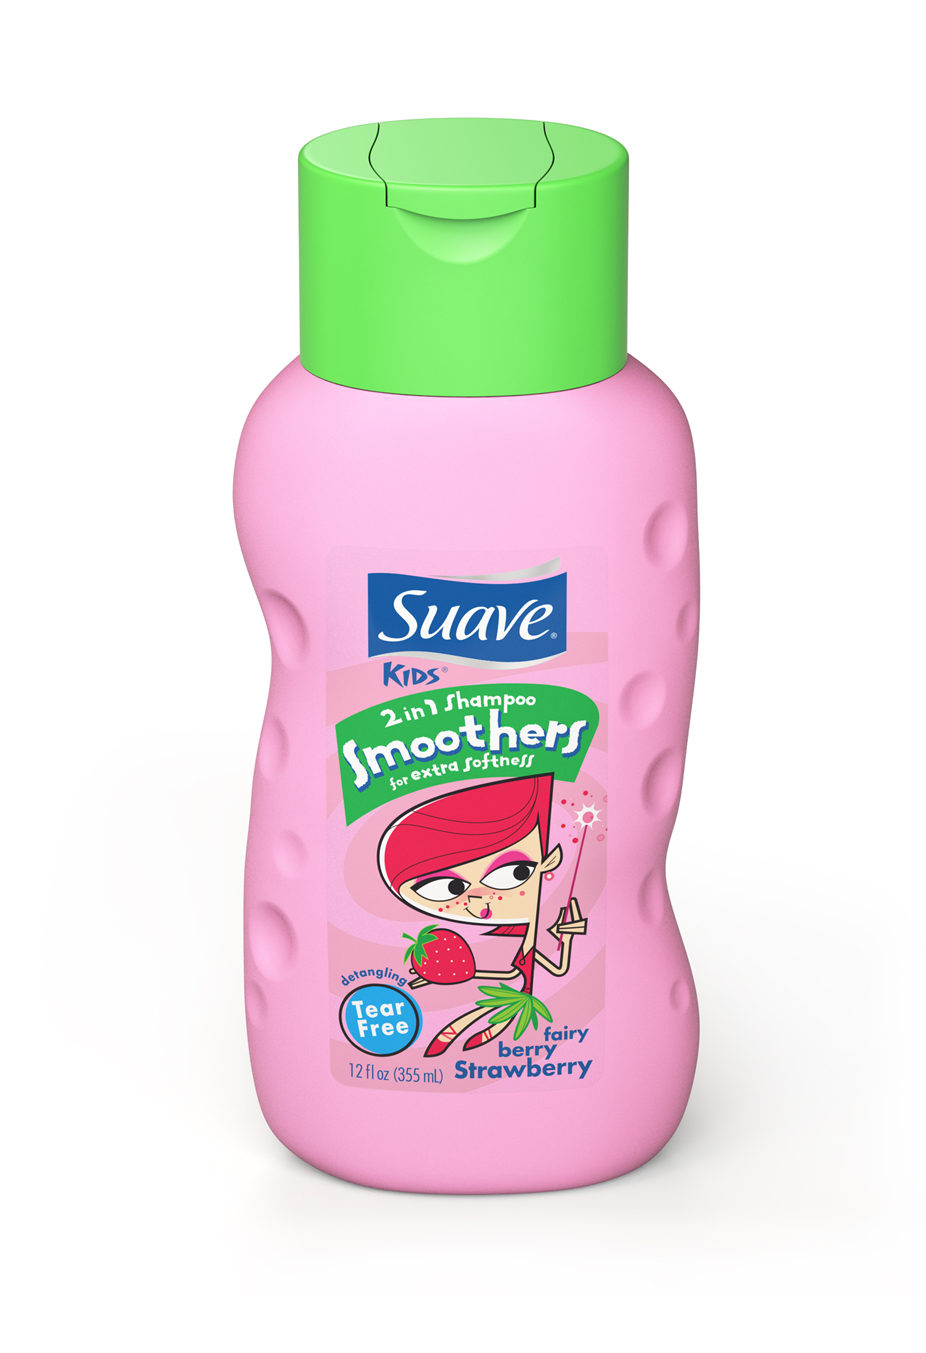 Kids Shampoo Bottle Kid's Shampoo Bottle